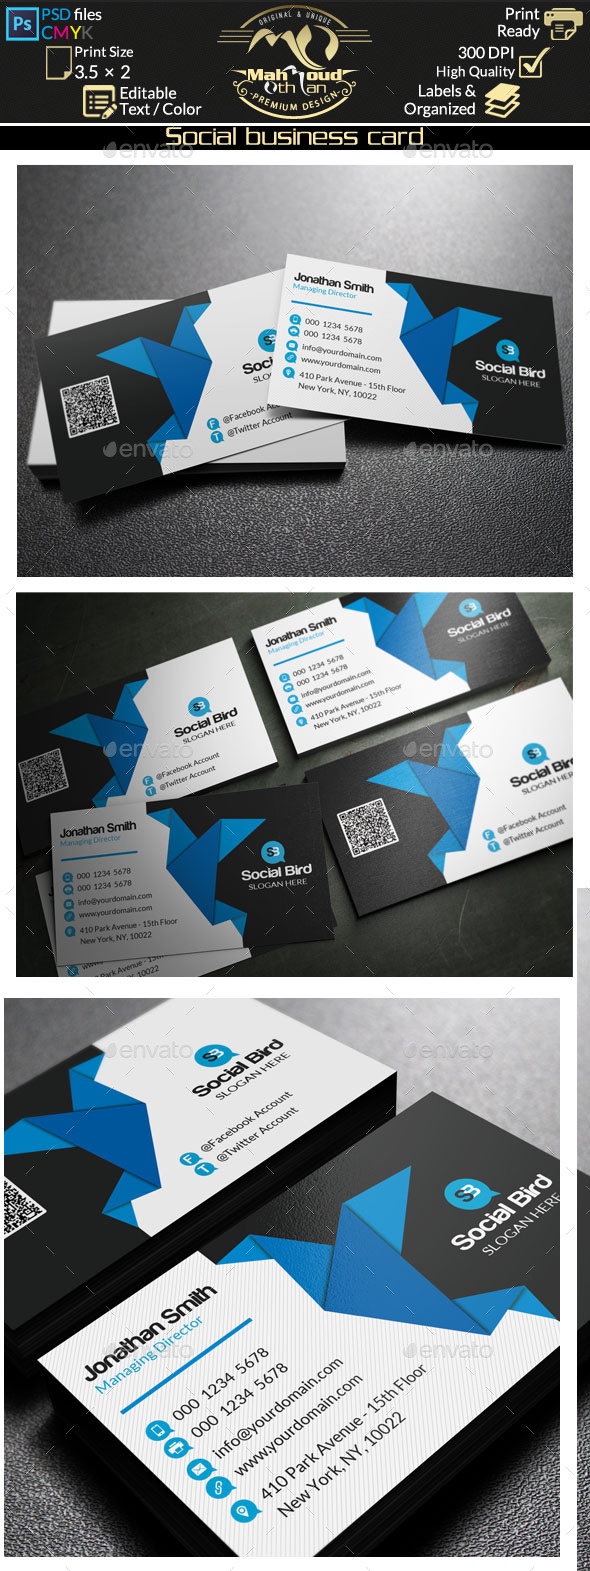 Social Organization Business Card Templates Designs - Social media business card template free